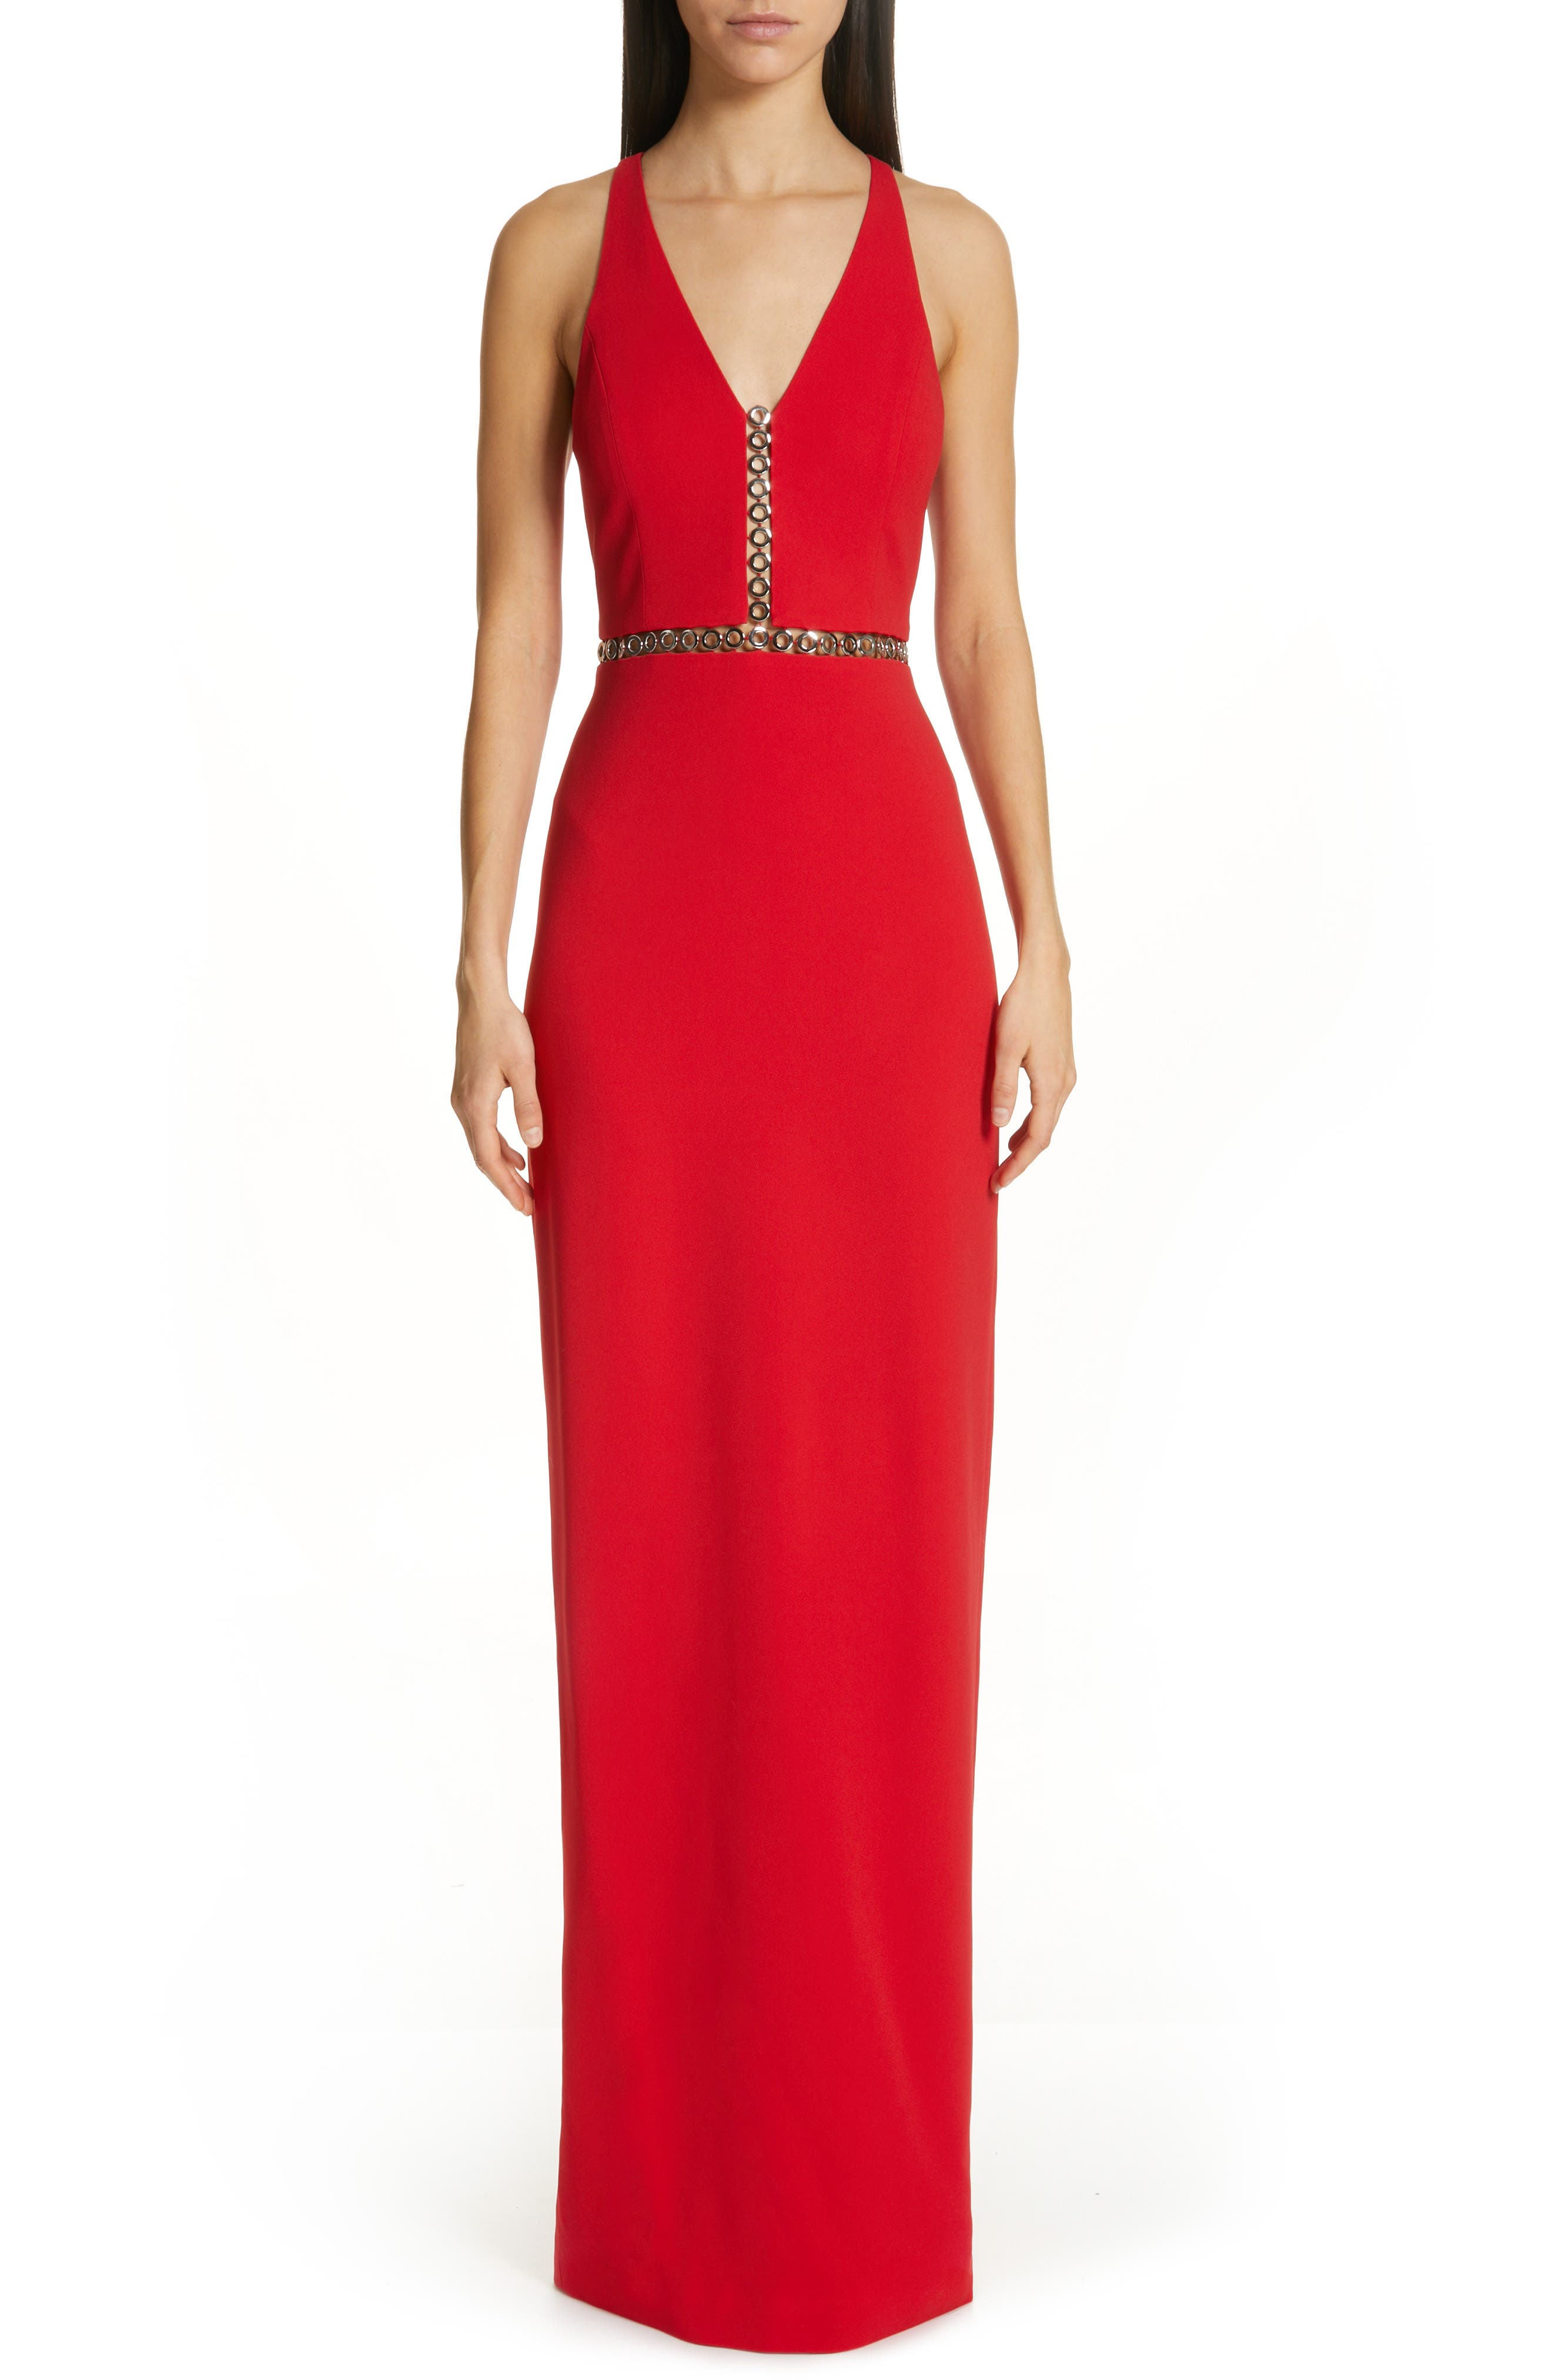 Alexander Wang Grommet Trim Racerback Column Gown, Red